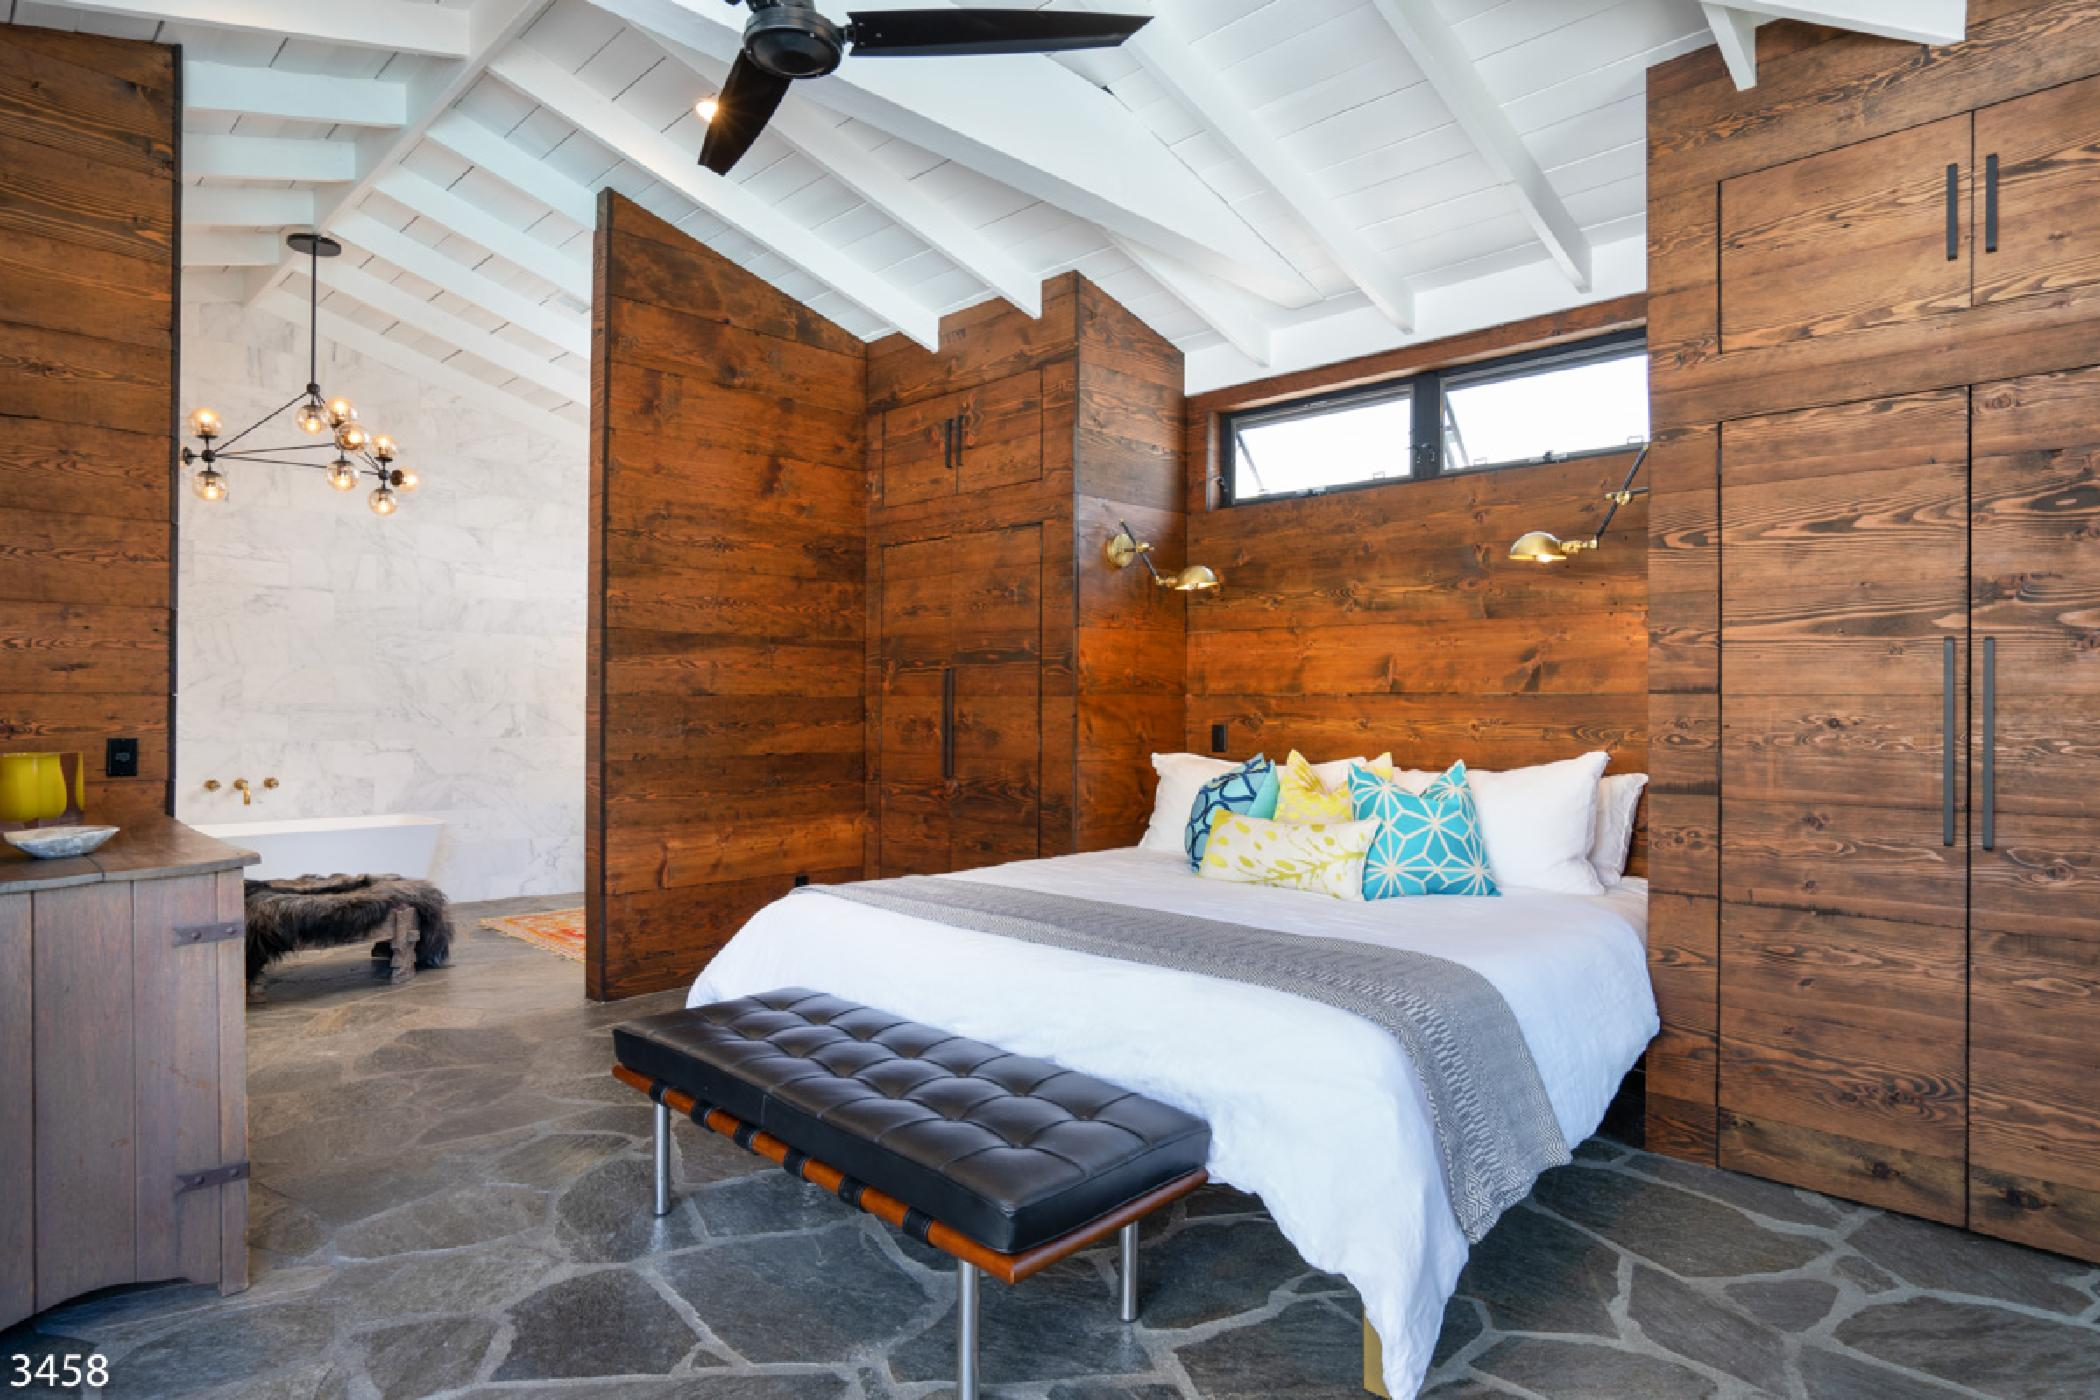 Boho-chic Abode with Meticulous Decor and Heated Pool